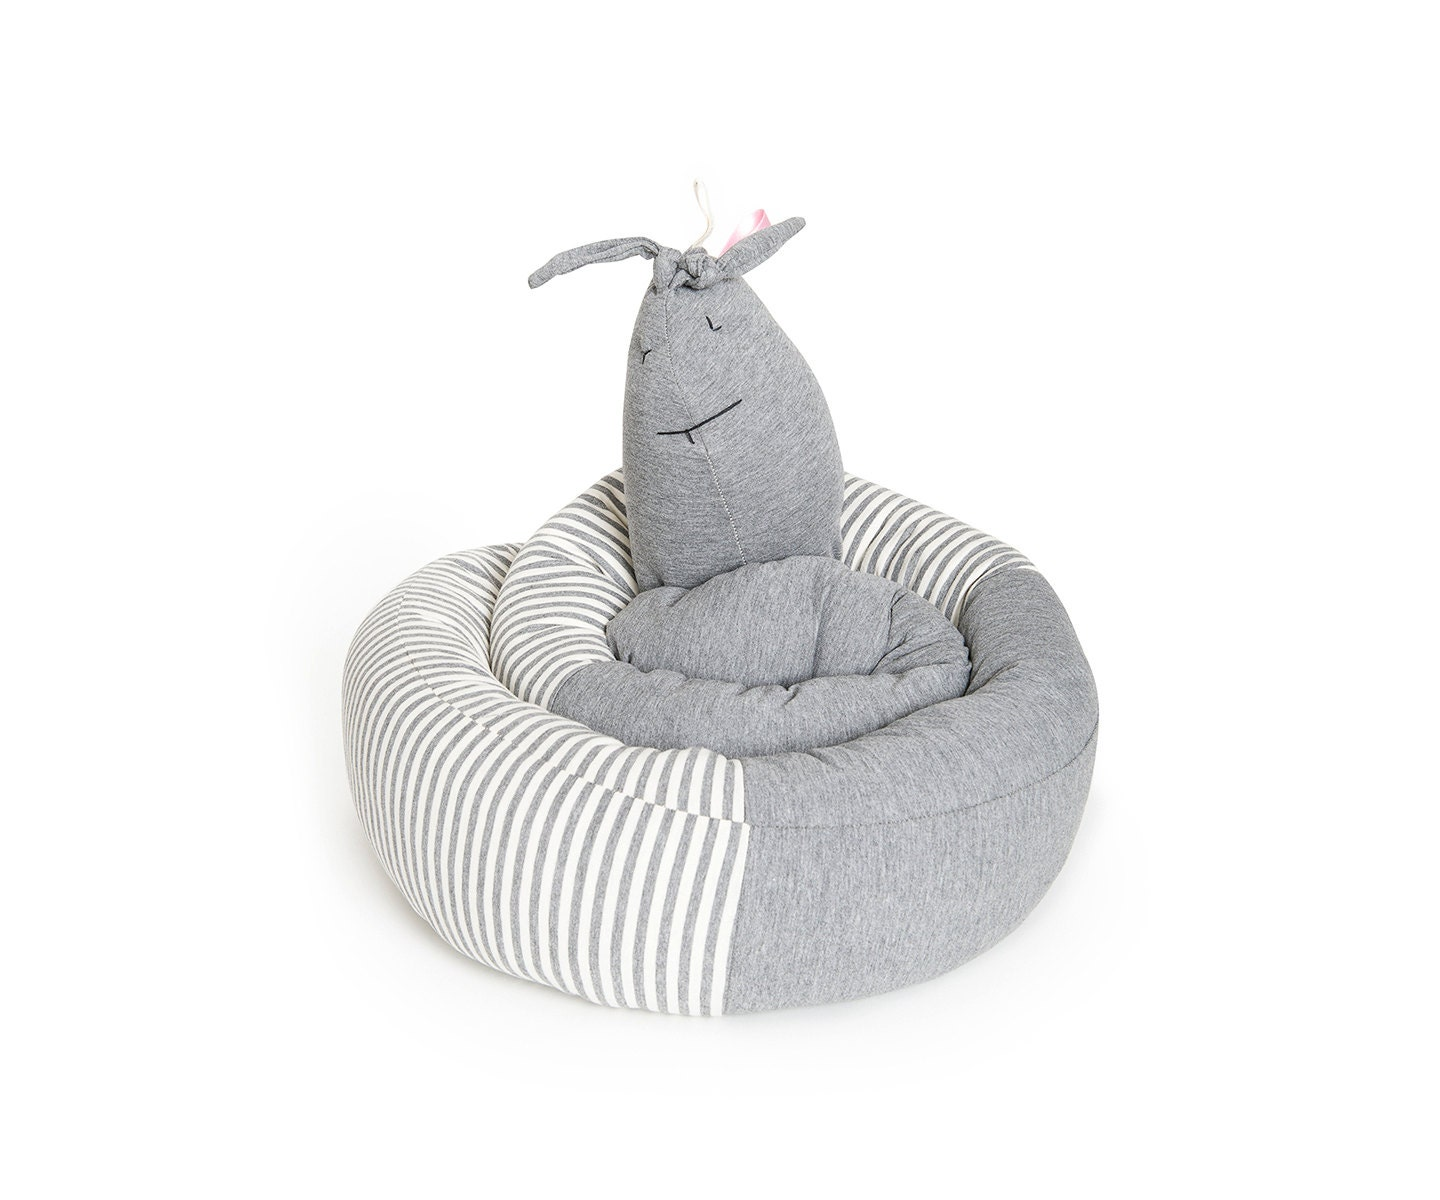 Baby cribs in kenya - Snaily Bailey Spiral Pillow For Baby Crib Grey Crib Bumper For Bassinet And Baby Crib